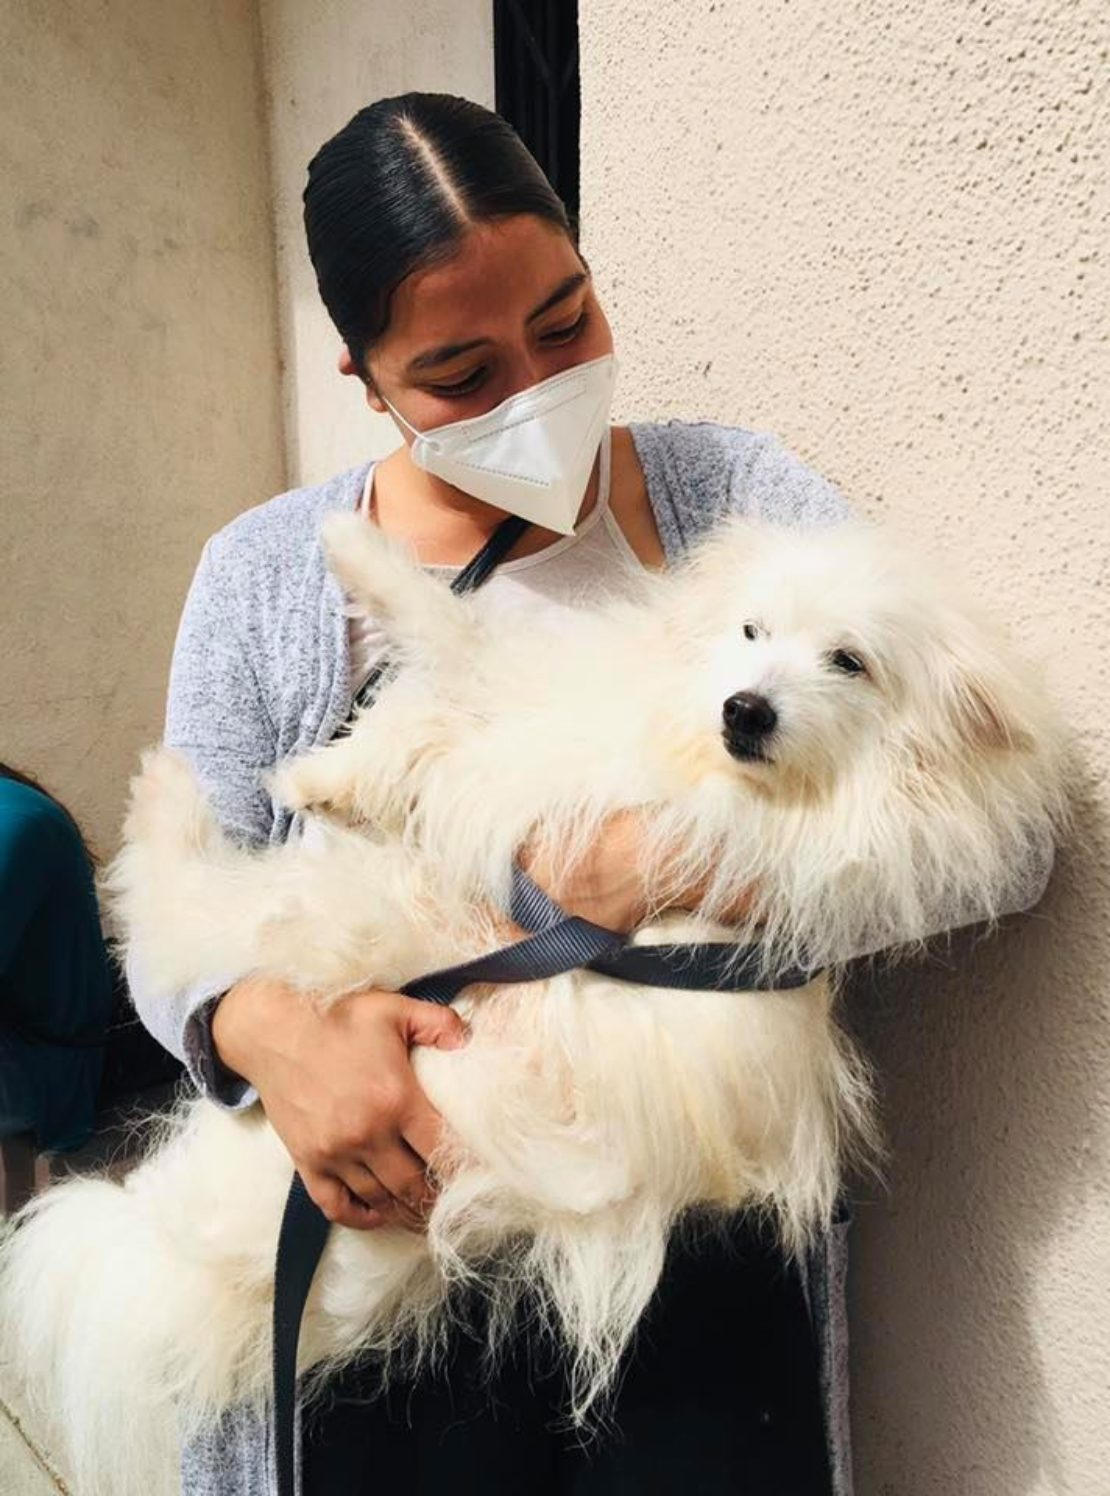 Young woman wearing mask holds fluffy, white dog.